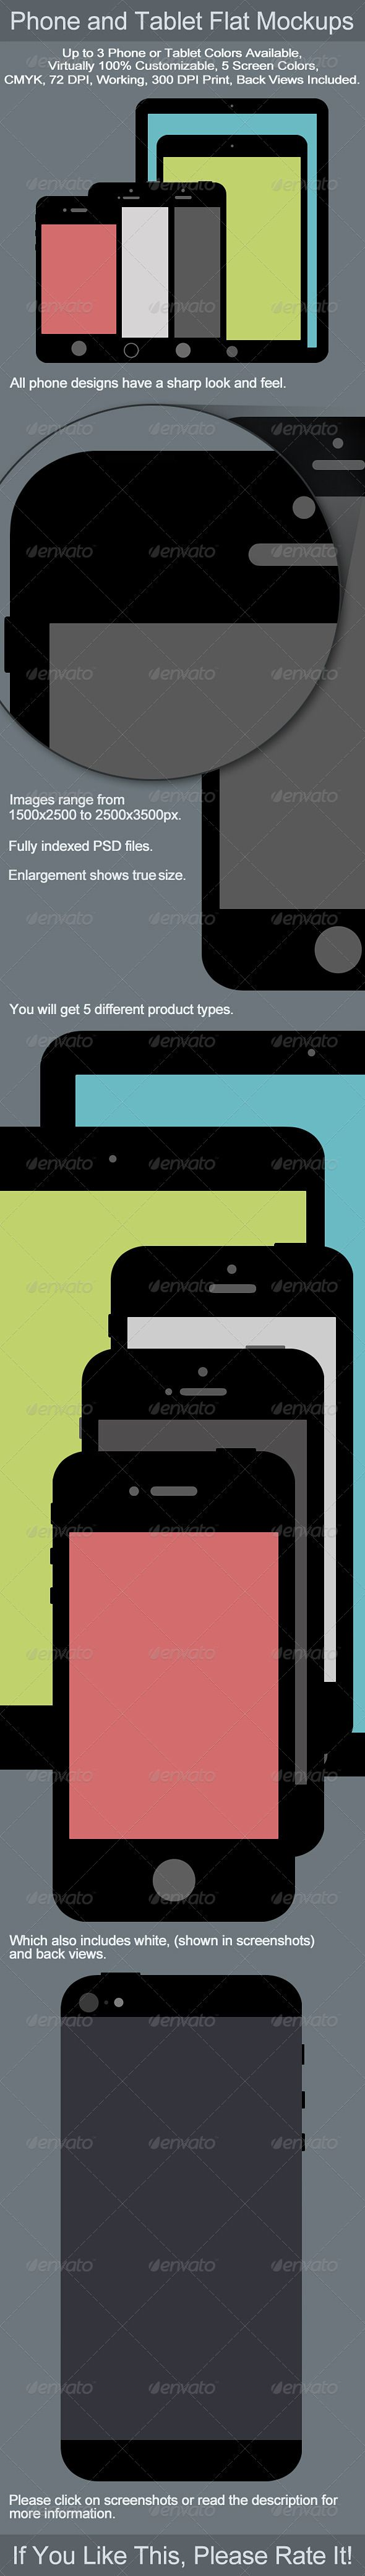 phone and tablet flat mockups mockup phone and business flyer